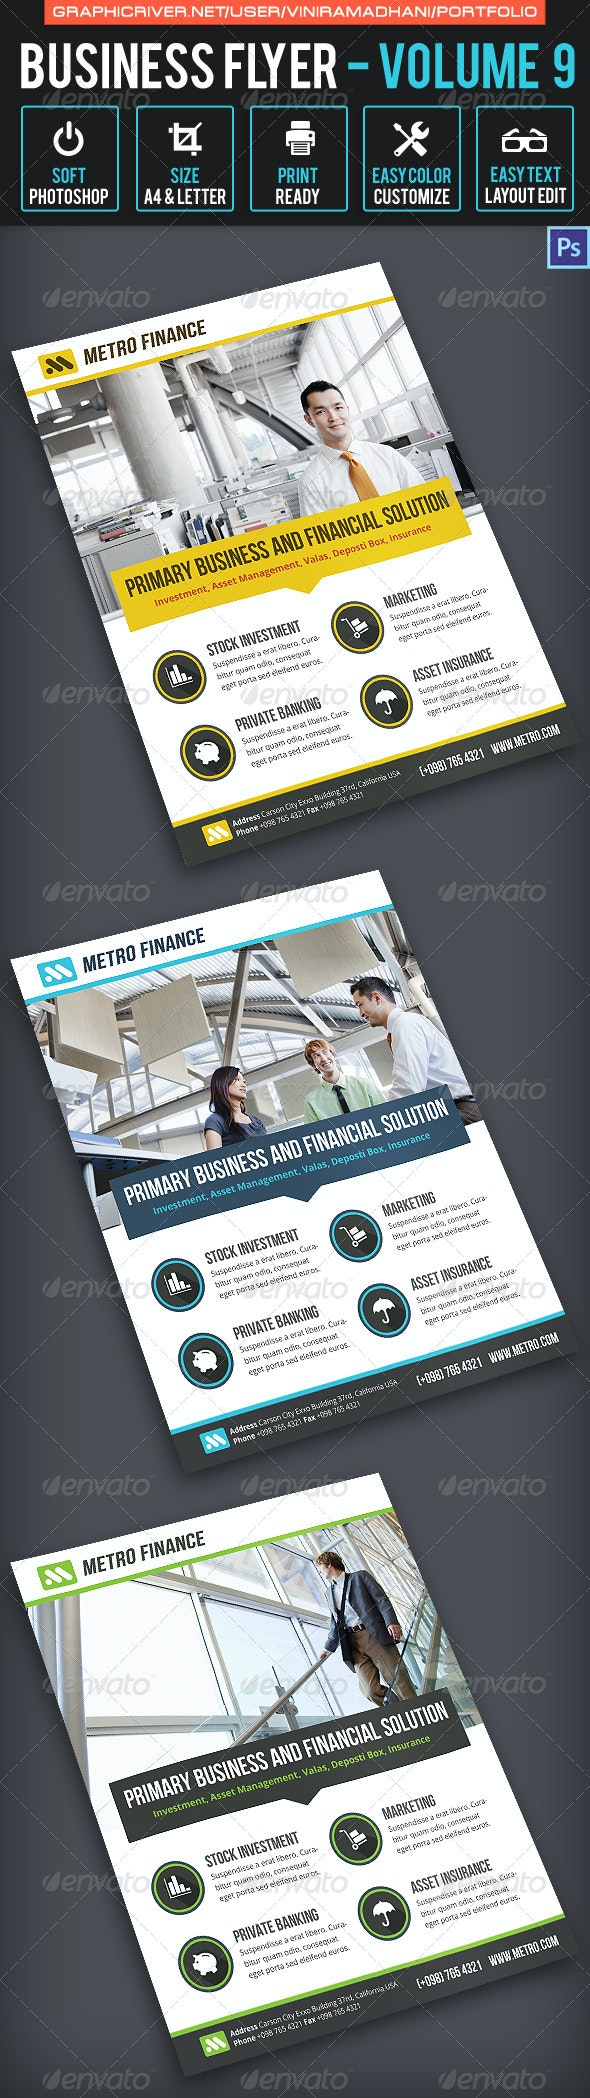 Business Flyer Volume 9 - Corporate Flyers